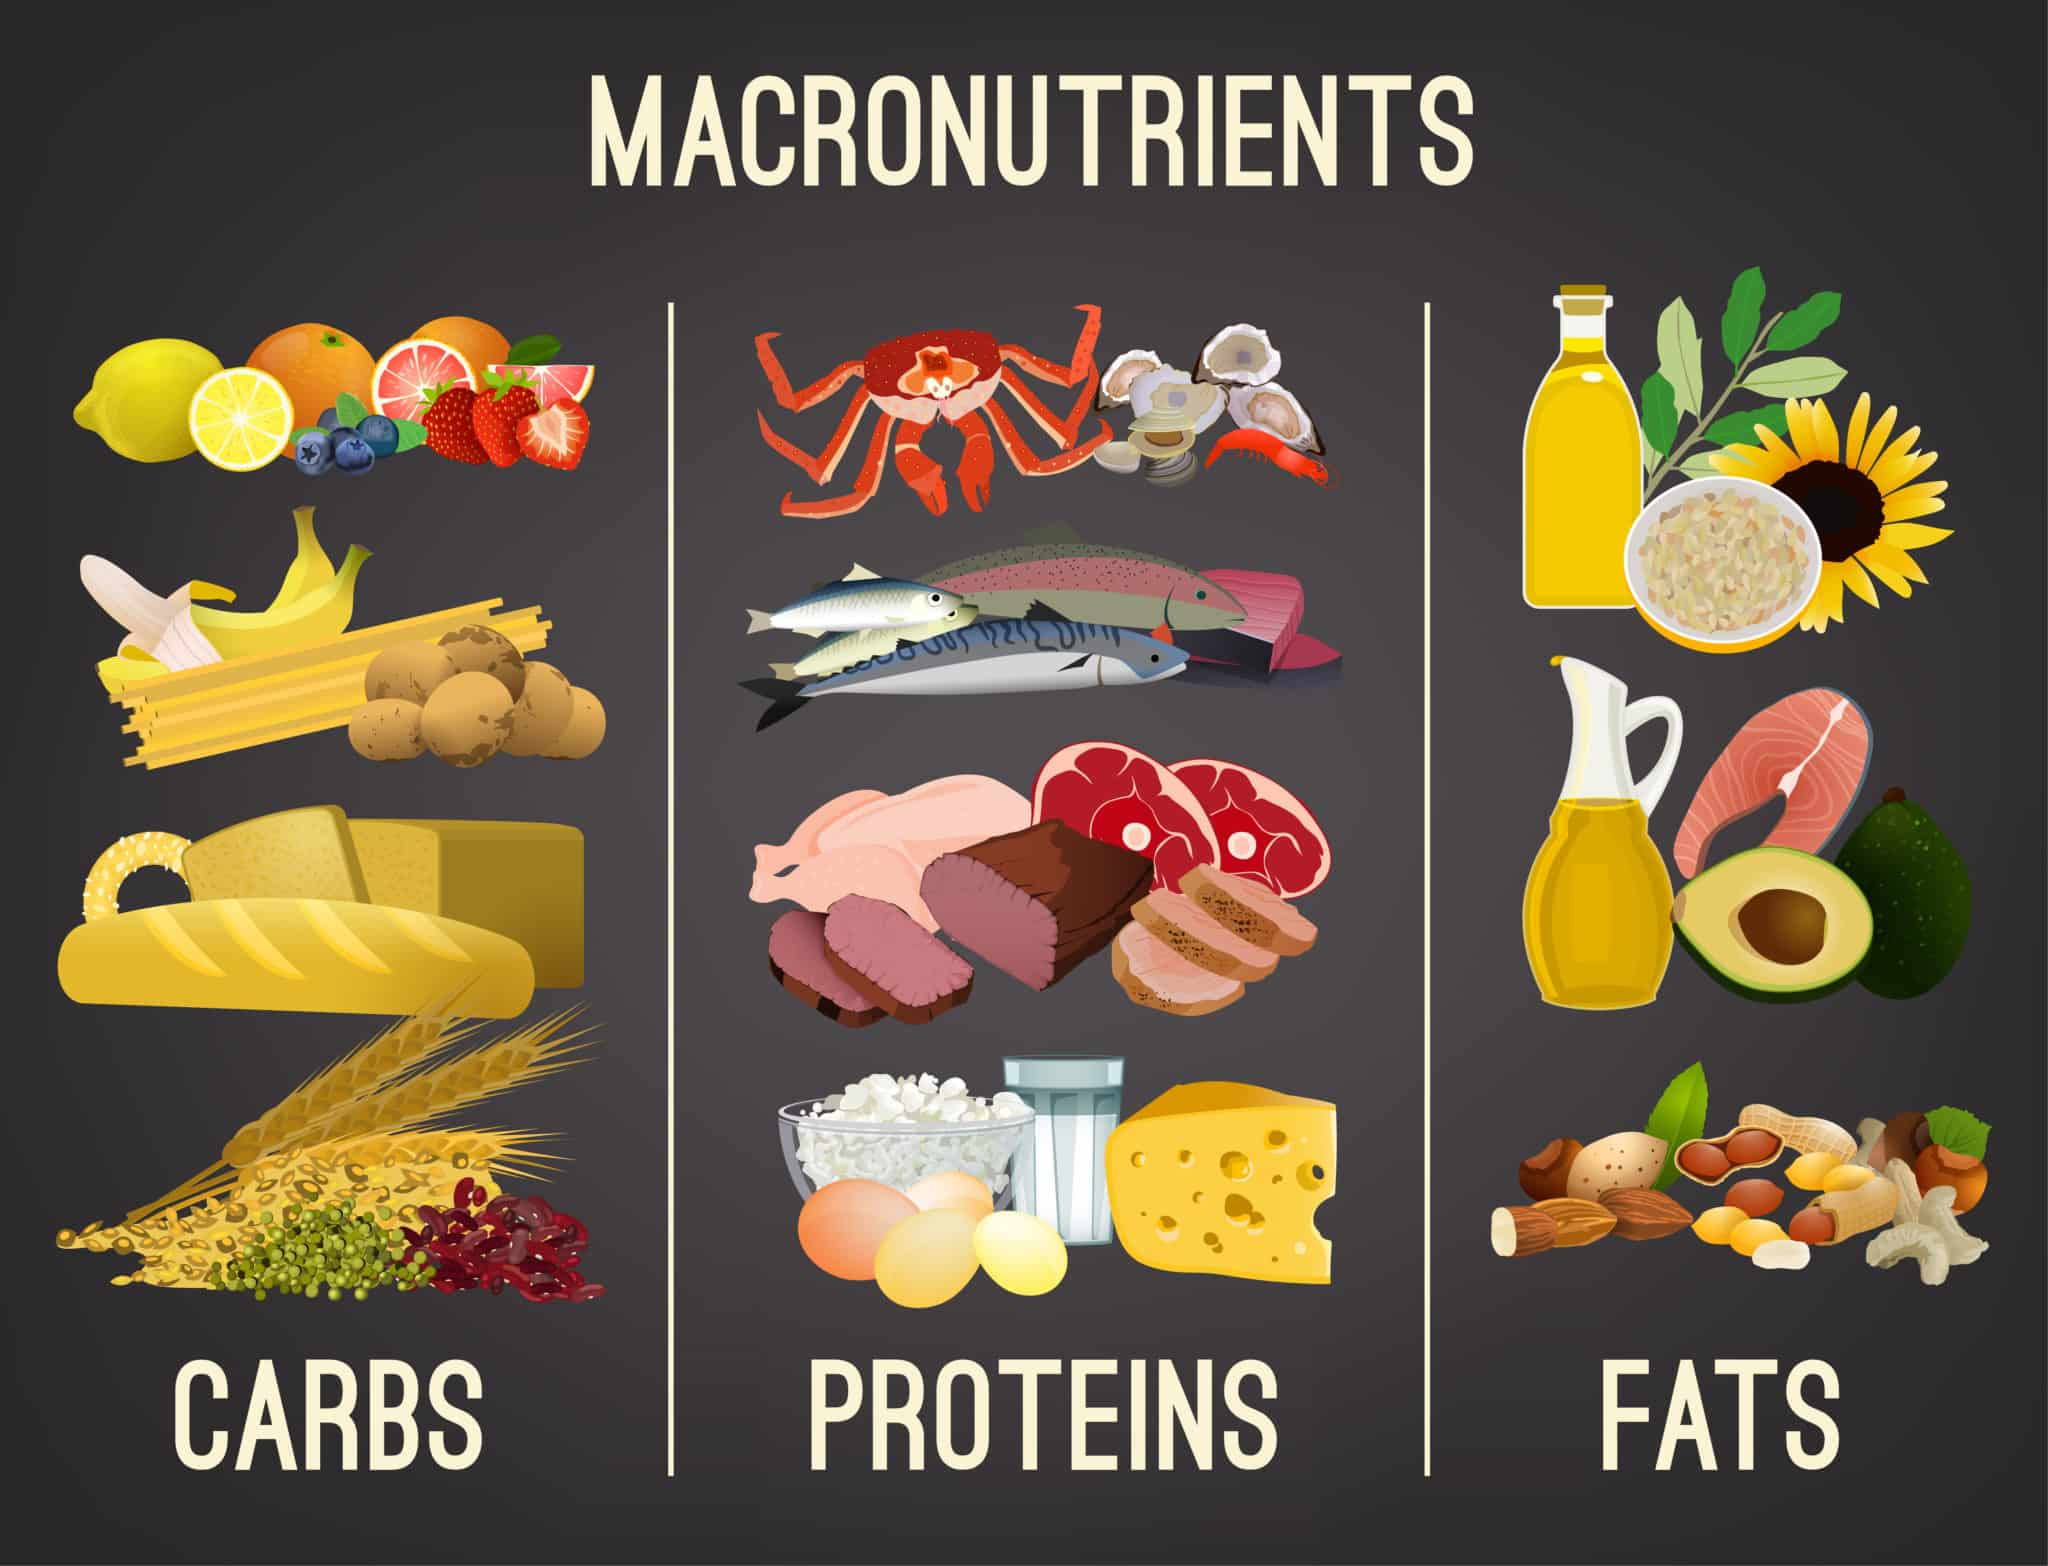 Graphic of macronutrients with images of carbs, proteins and fats